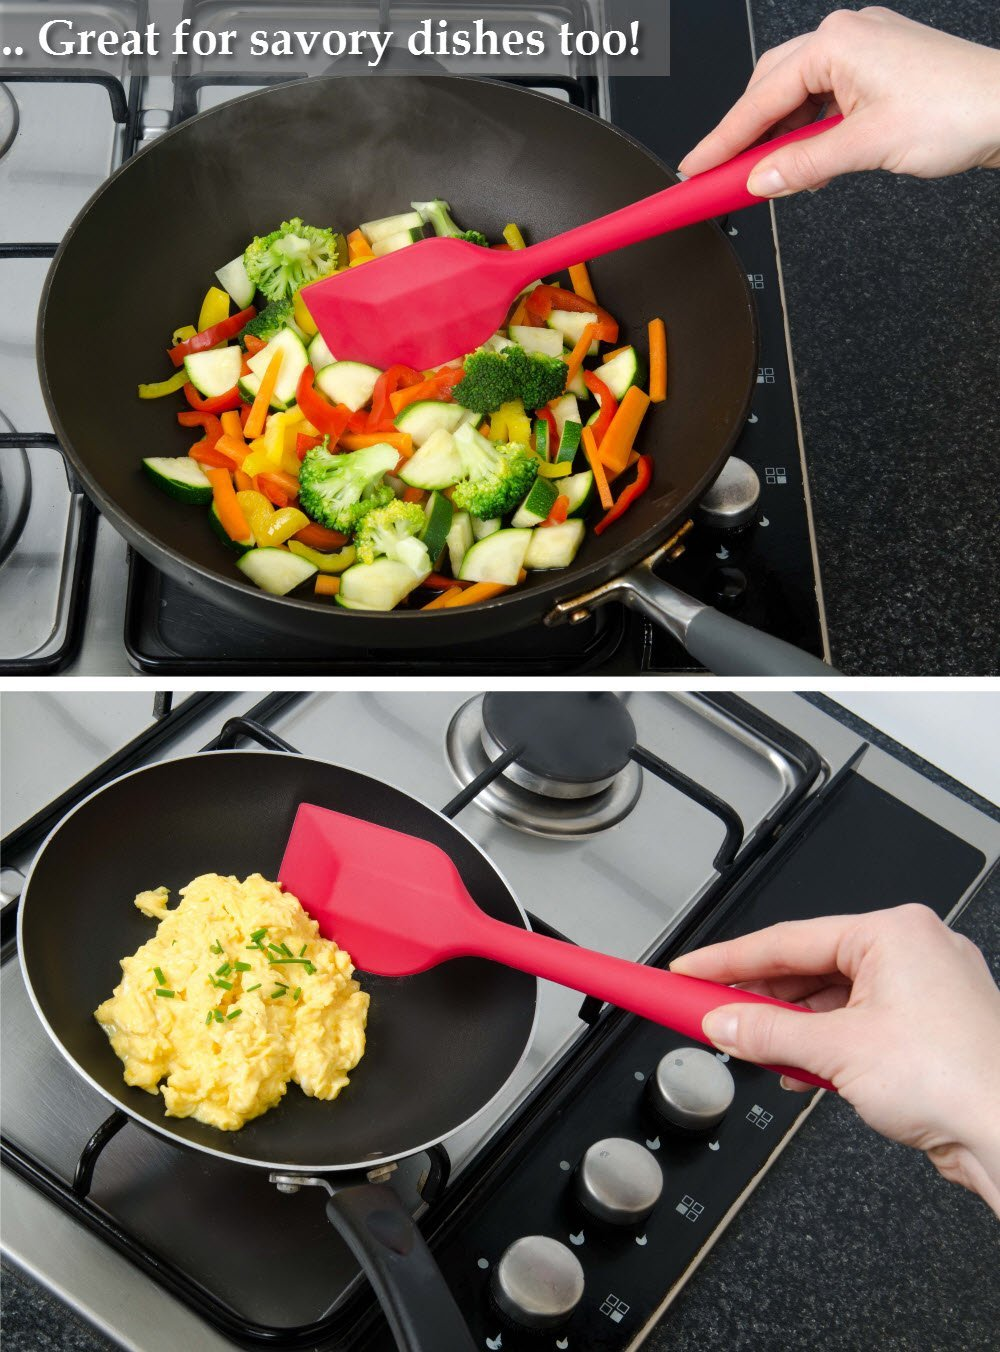 USSE Non-stick Stain resistant and Odor resistant Flexible silicone head design Durable Red Silicone Spatula